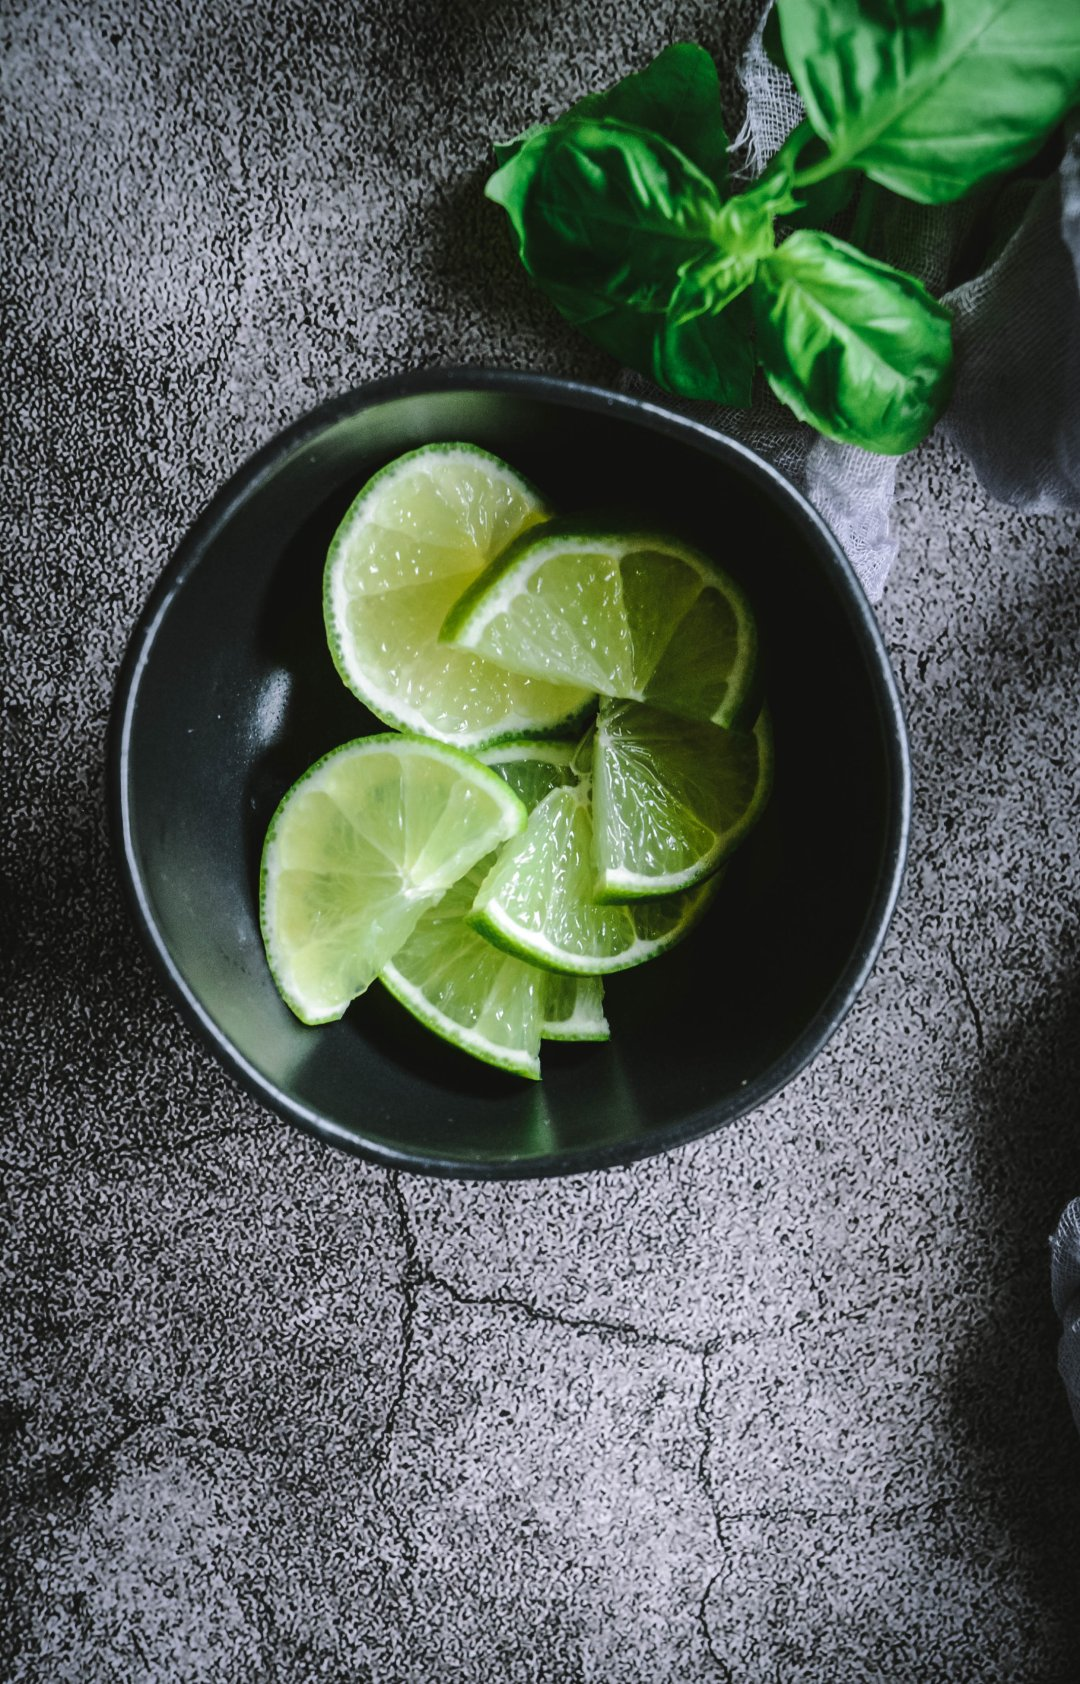 bowl of lime slices and basil